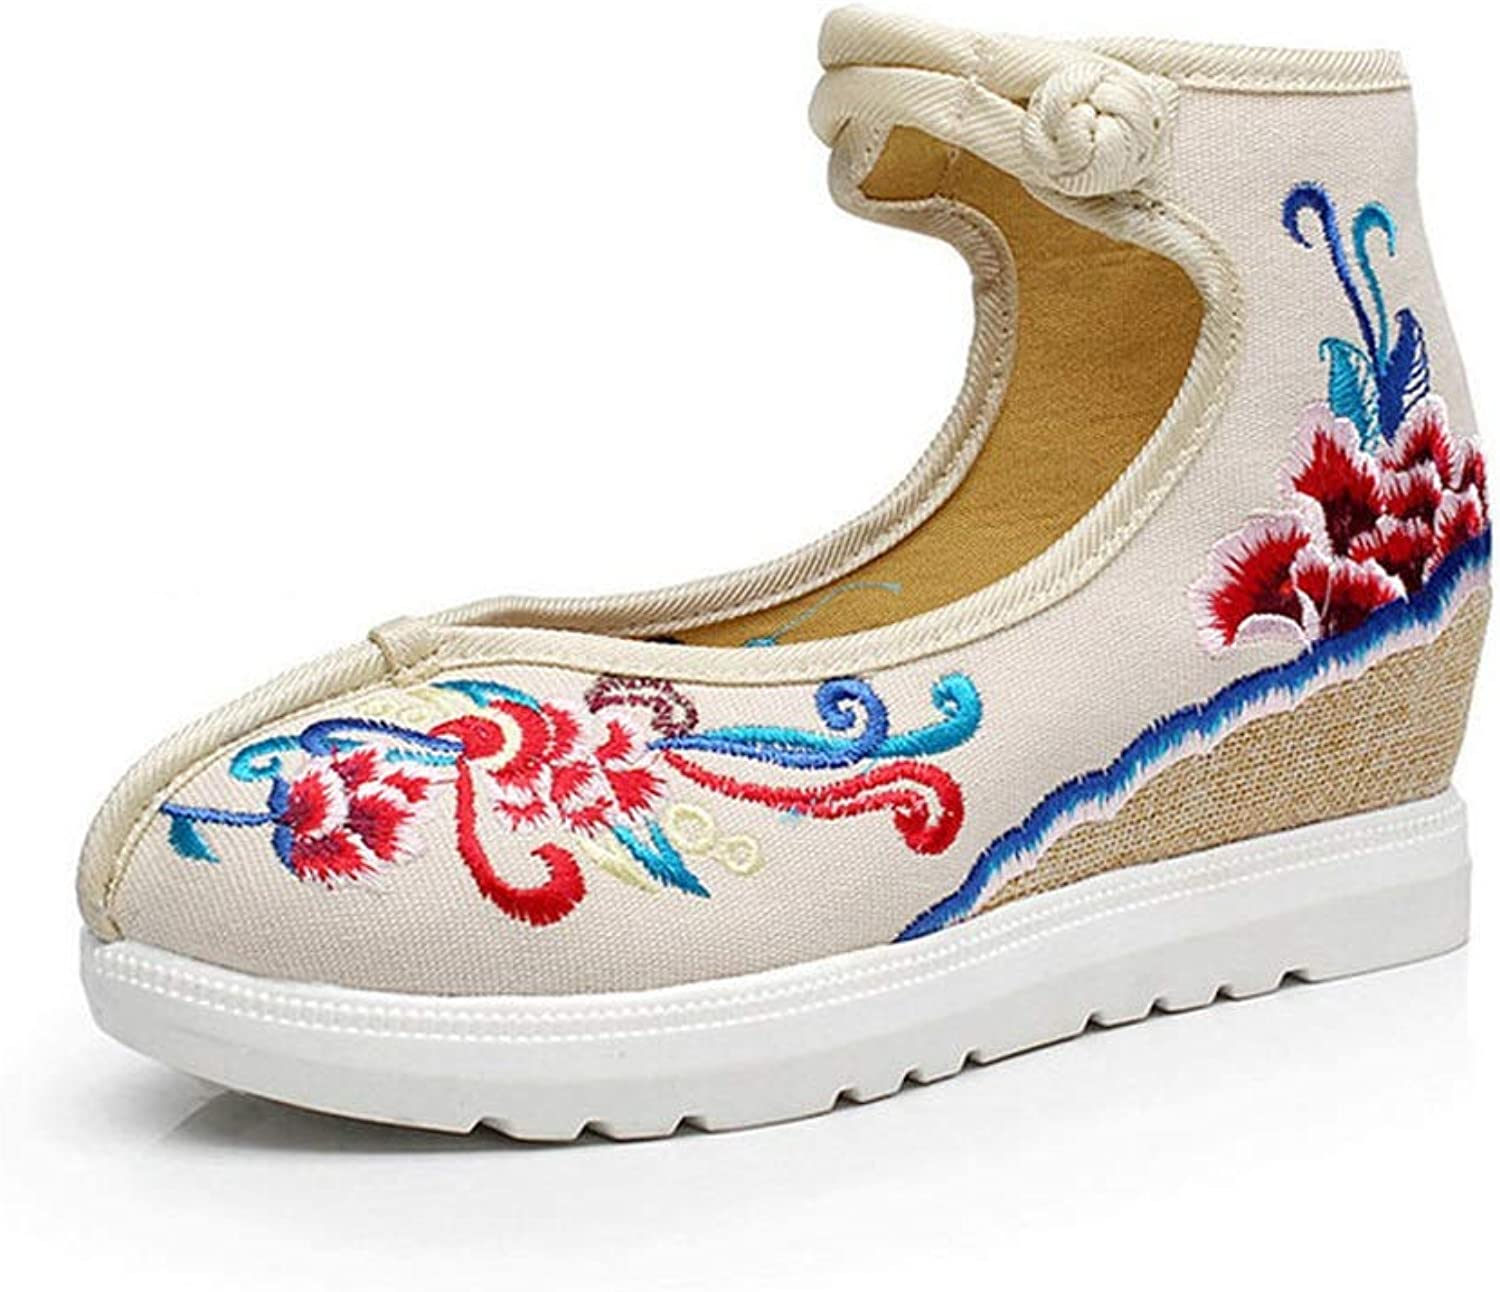 Old Beijing Cloth shoes Spring National Wind Women's shoes Cotton and Linen Canvas Embroidered shoes Increased in The Women's shoes